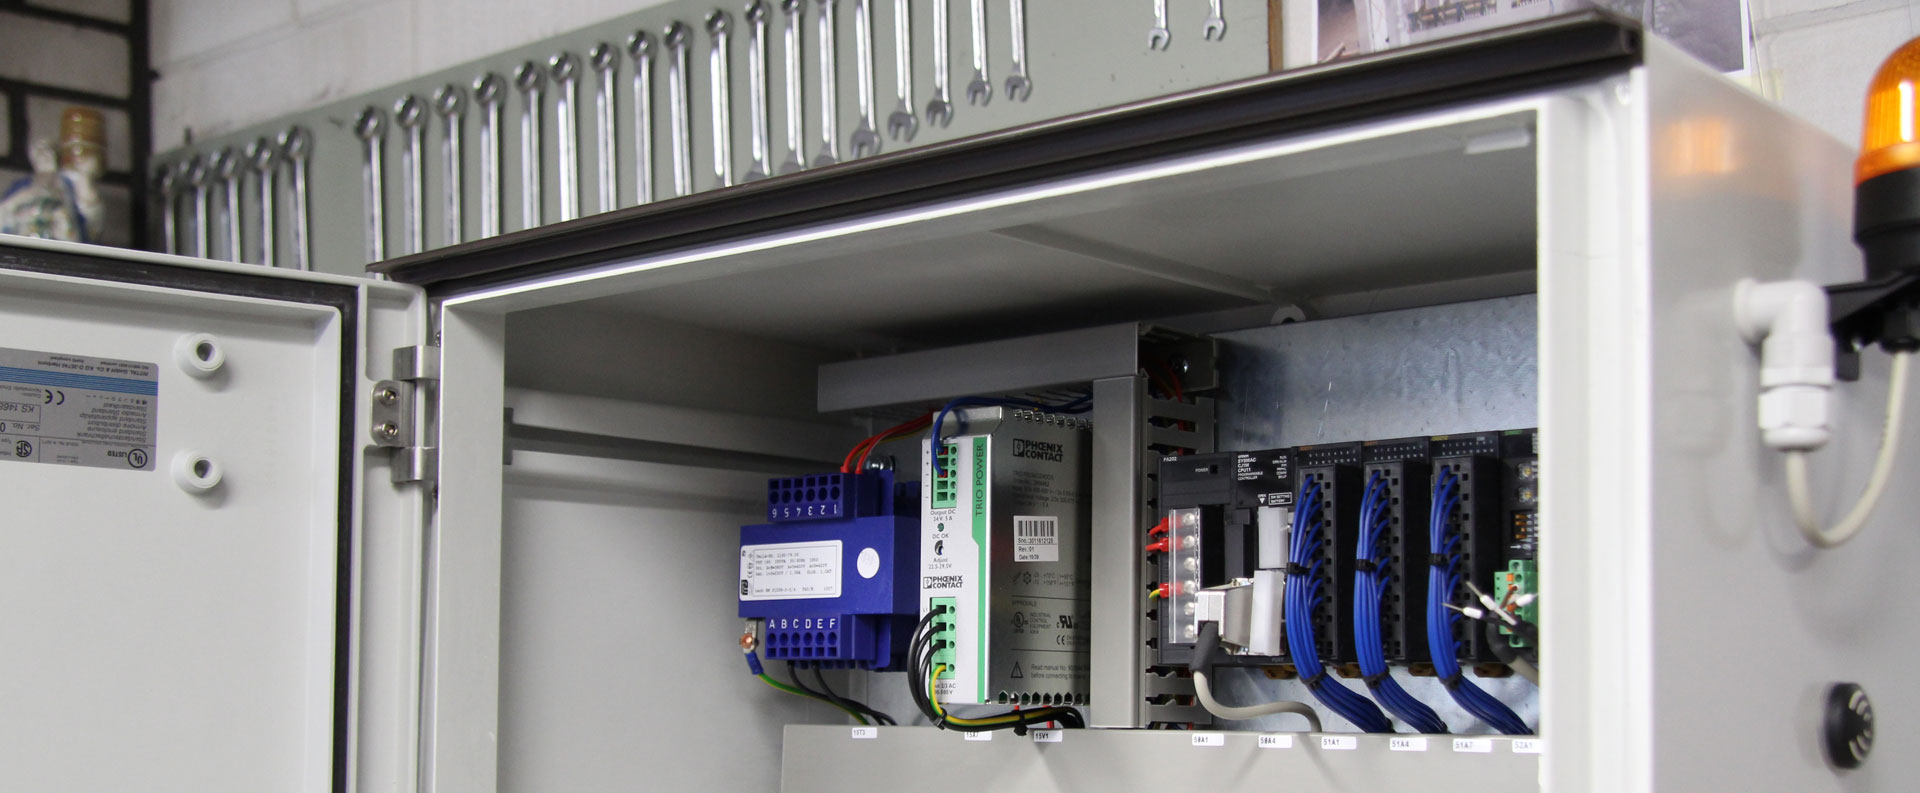 Bespoke automation systems